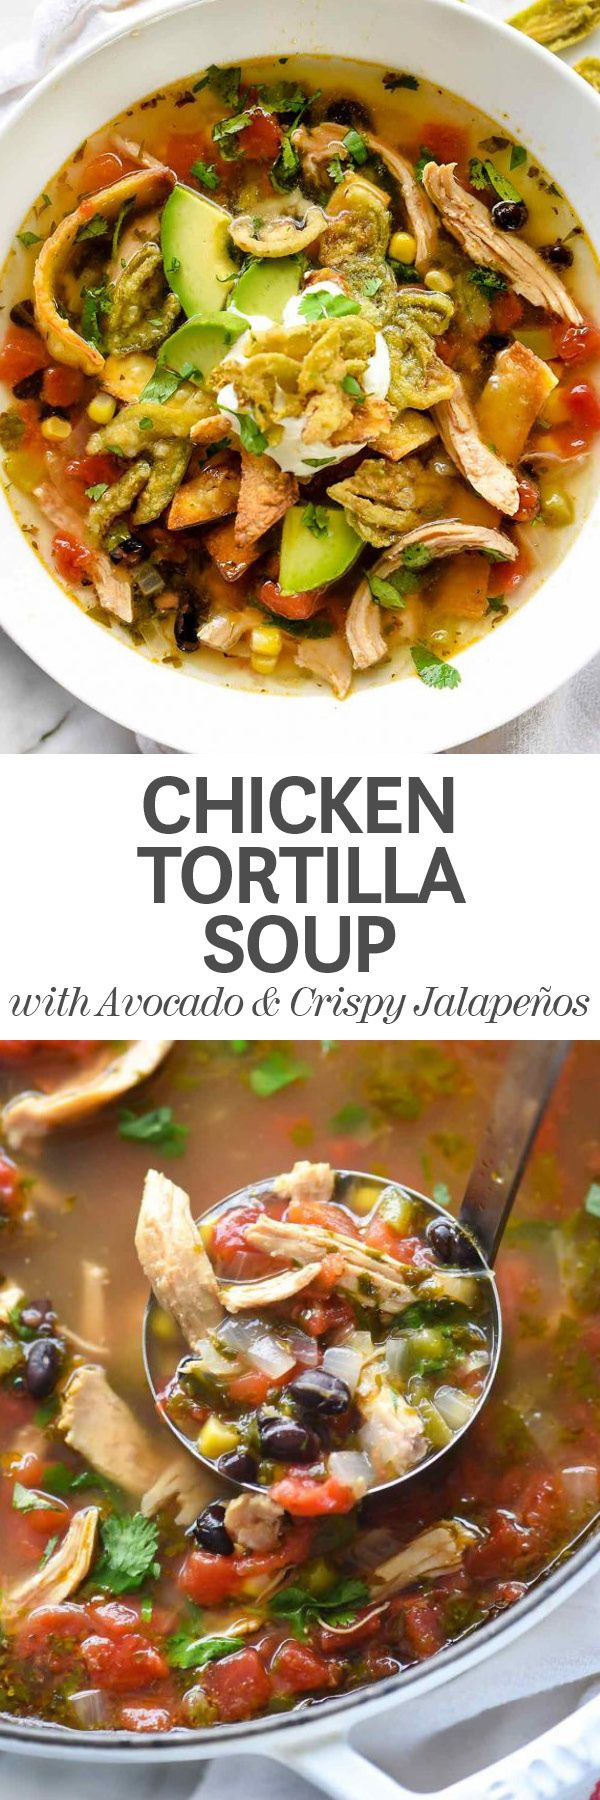 This Mexican-flavored chicken soup is truly chicken soup for the soul, with a warm broth filled with chunky bites of black beans, sweet corn, shredded chicken and tomatoes topped with its namesake tortilla strips and a surprise crispy jalapeño topper #soup #recipes #chicken #tortillasoup foodiecrush.com